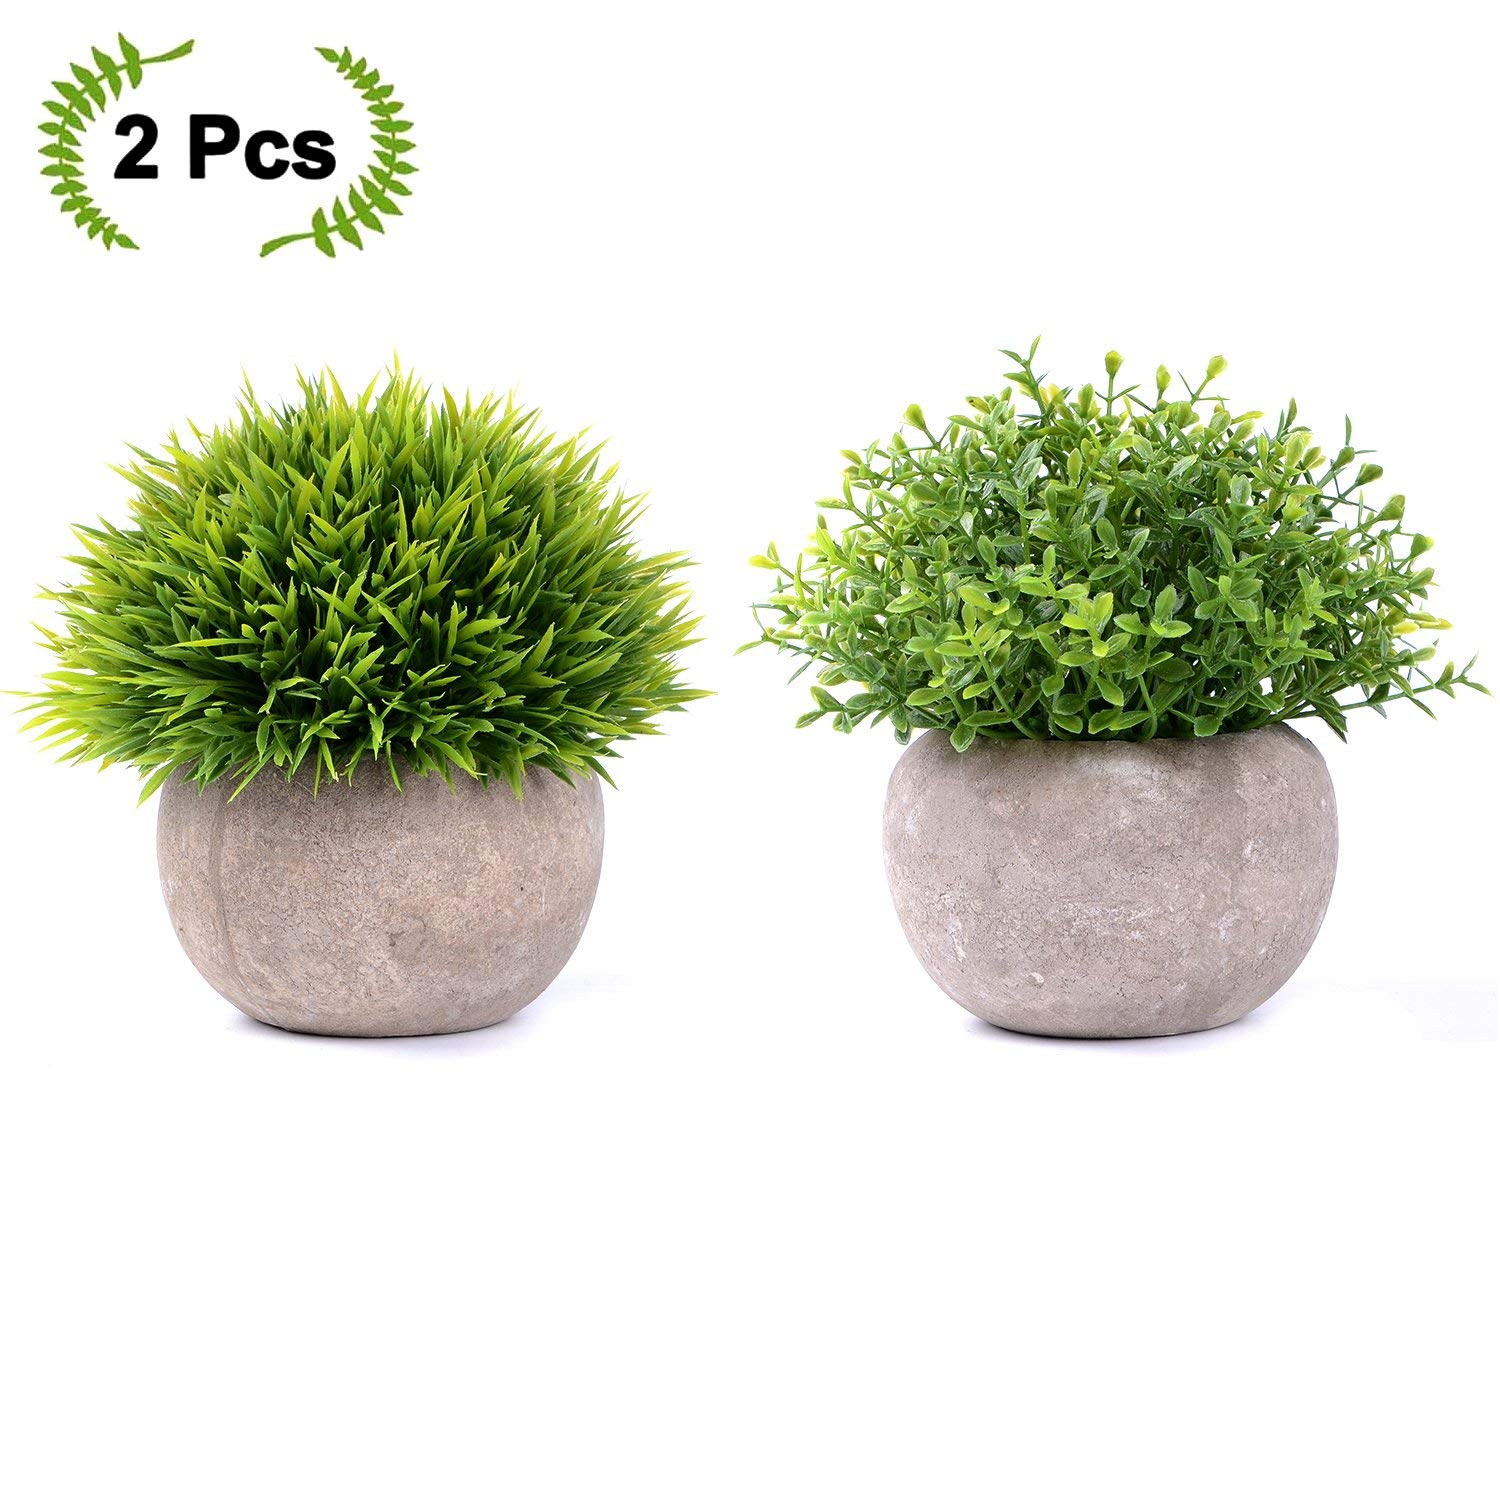 225 & Coolmade 2-pack Artificial Potted Green Grass Artificial Flowers Fake Plant for Bathroom/Home Decor Small Artificial Faux Greenery for House ...